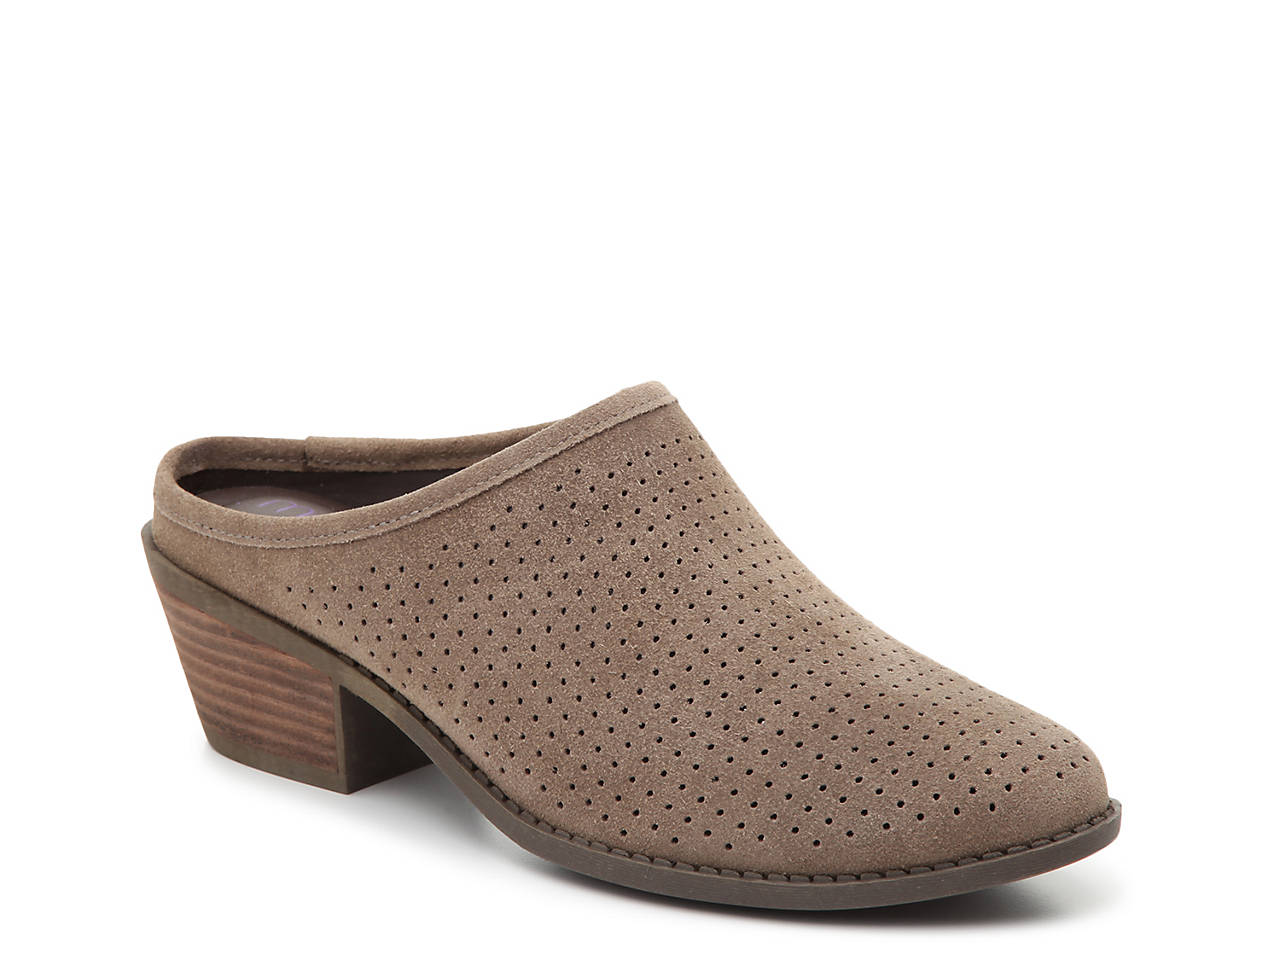 d5e76dd009 Me Too Zanta Mule Women s Shoes